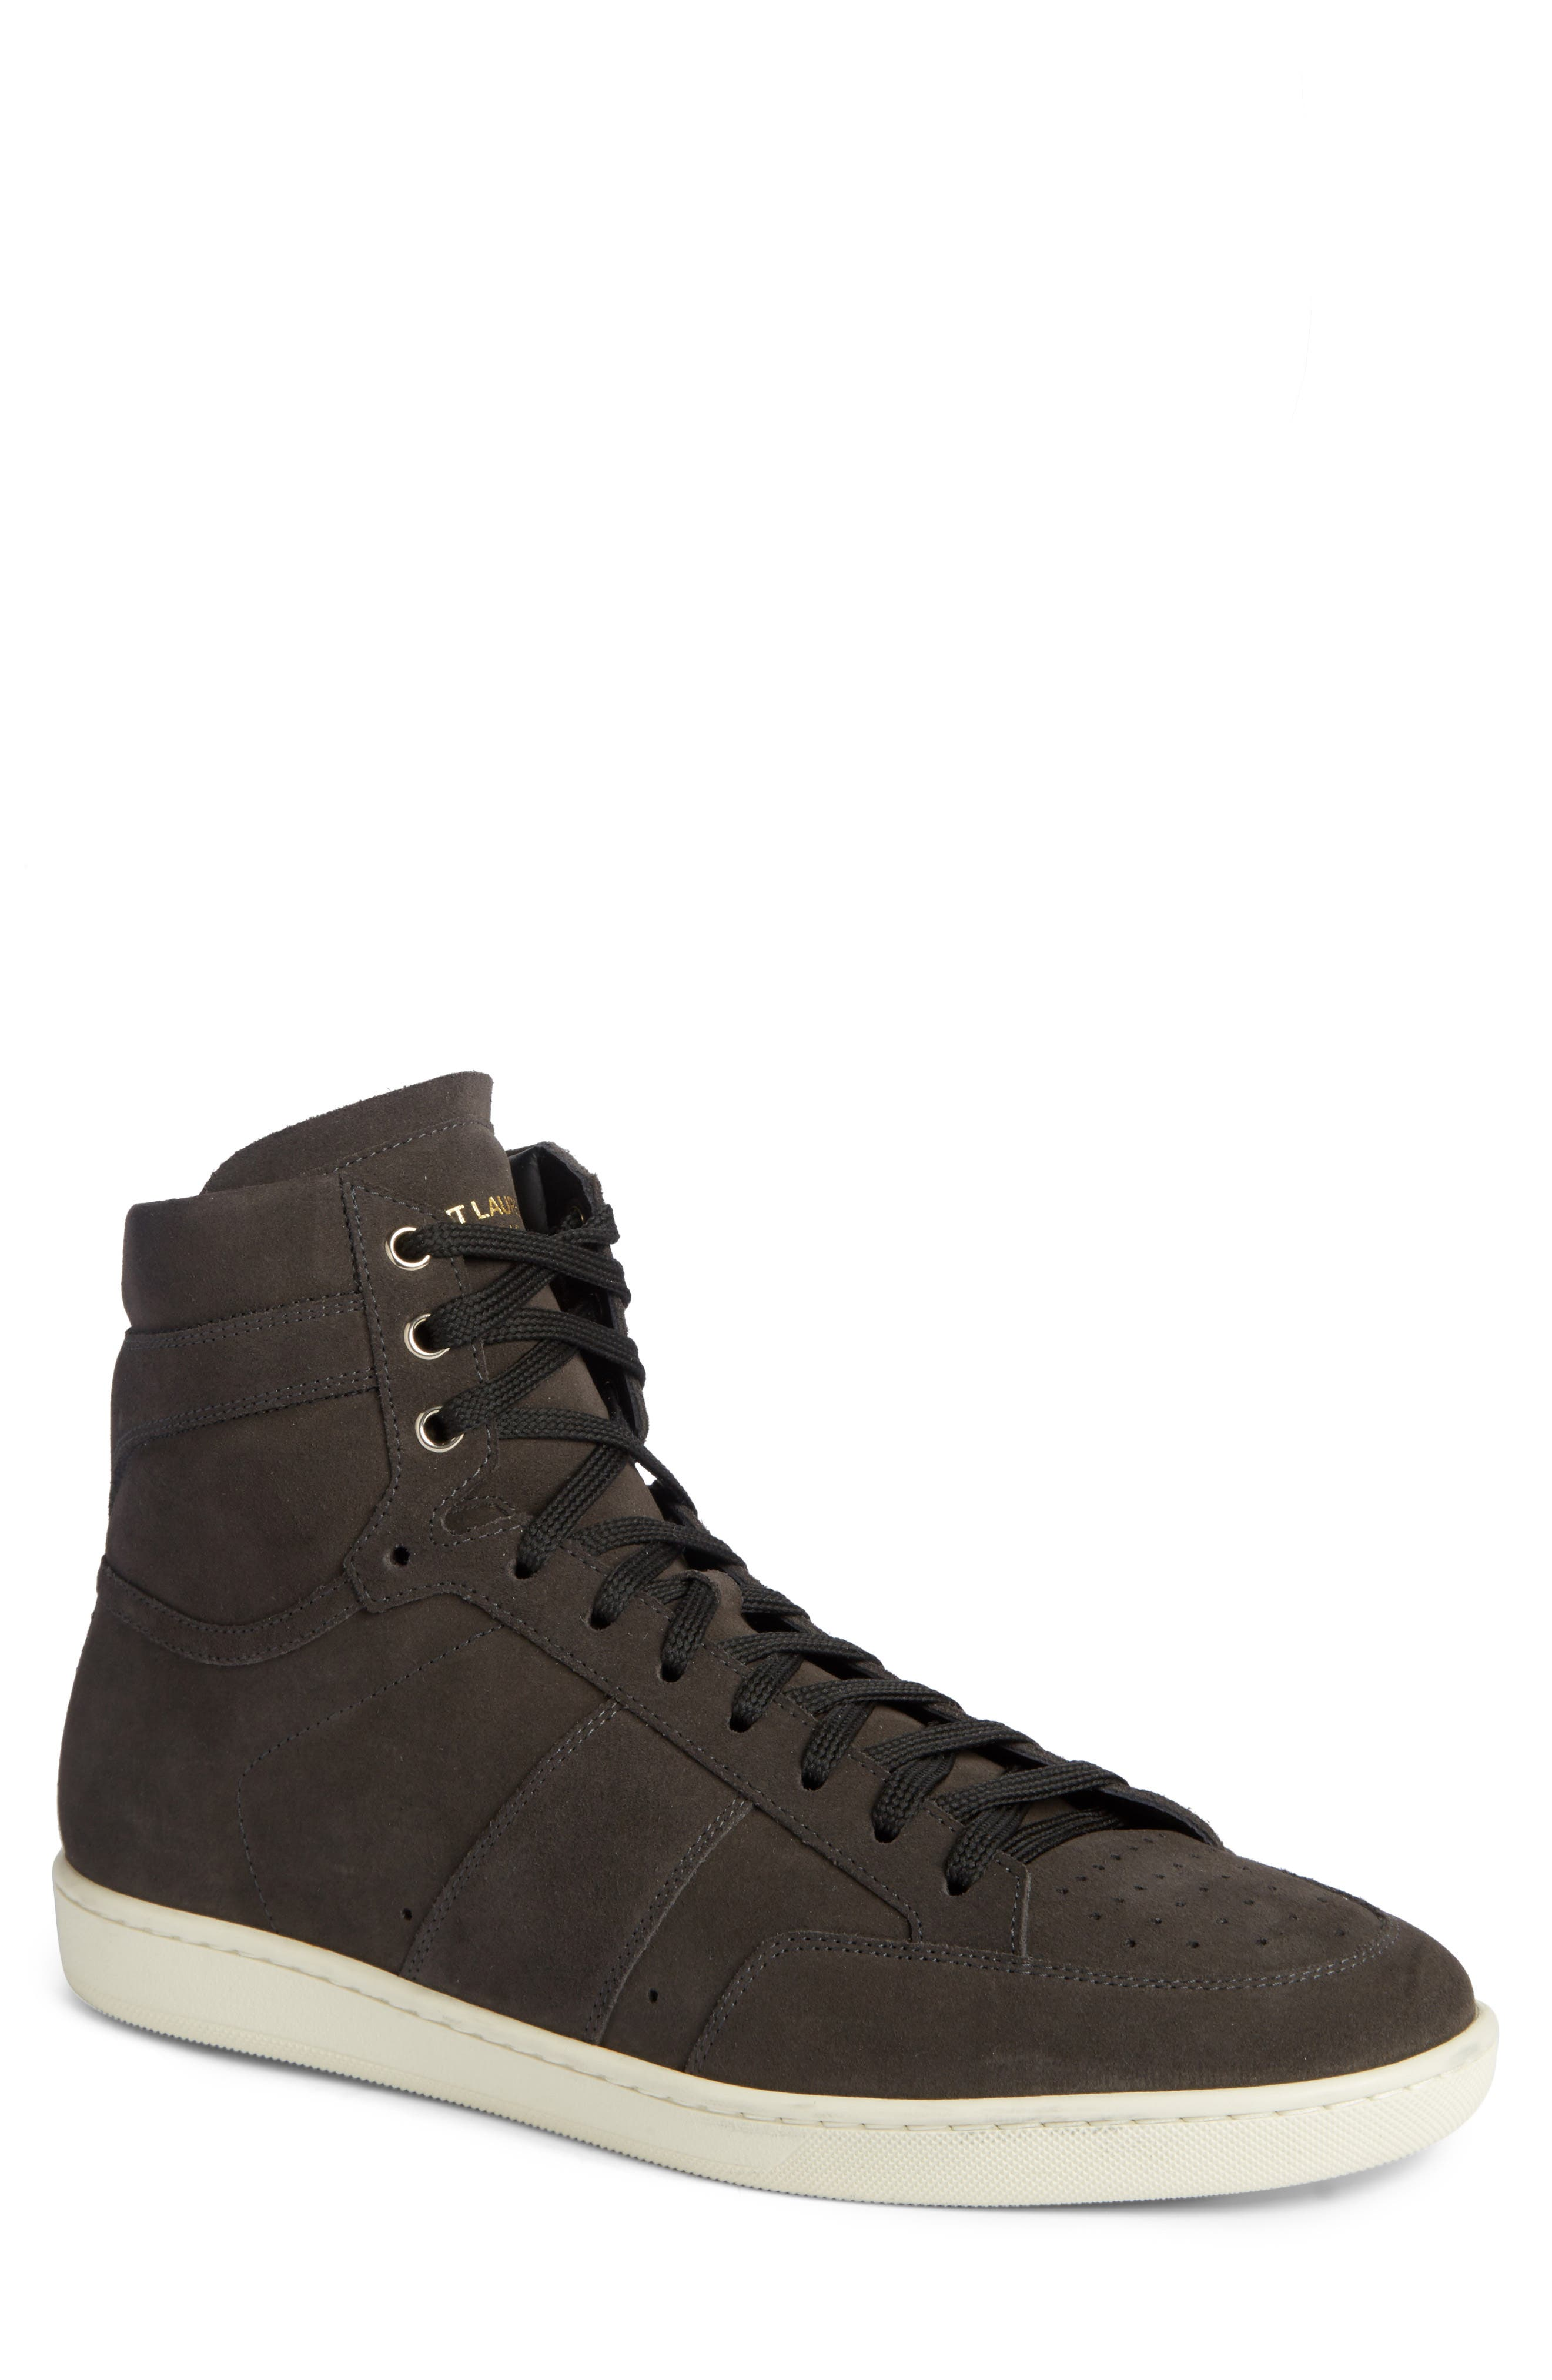 High Top Sneaker,                             Main thumbnail 1, color,                             Grey Suede